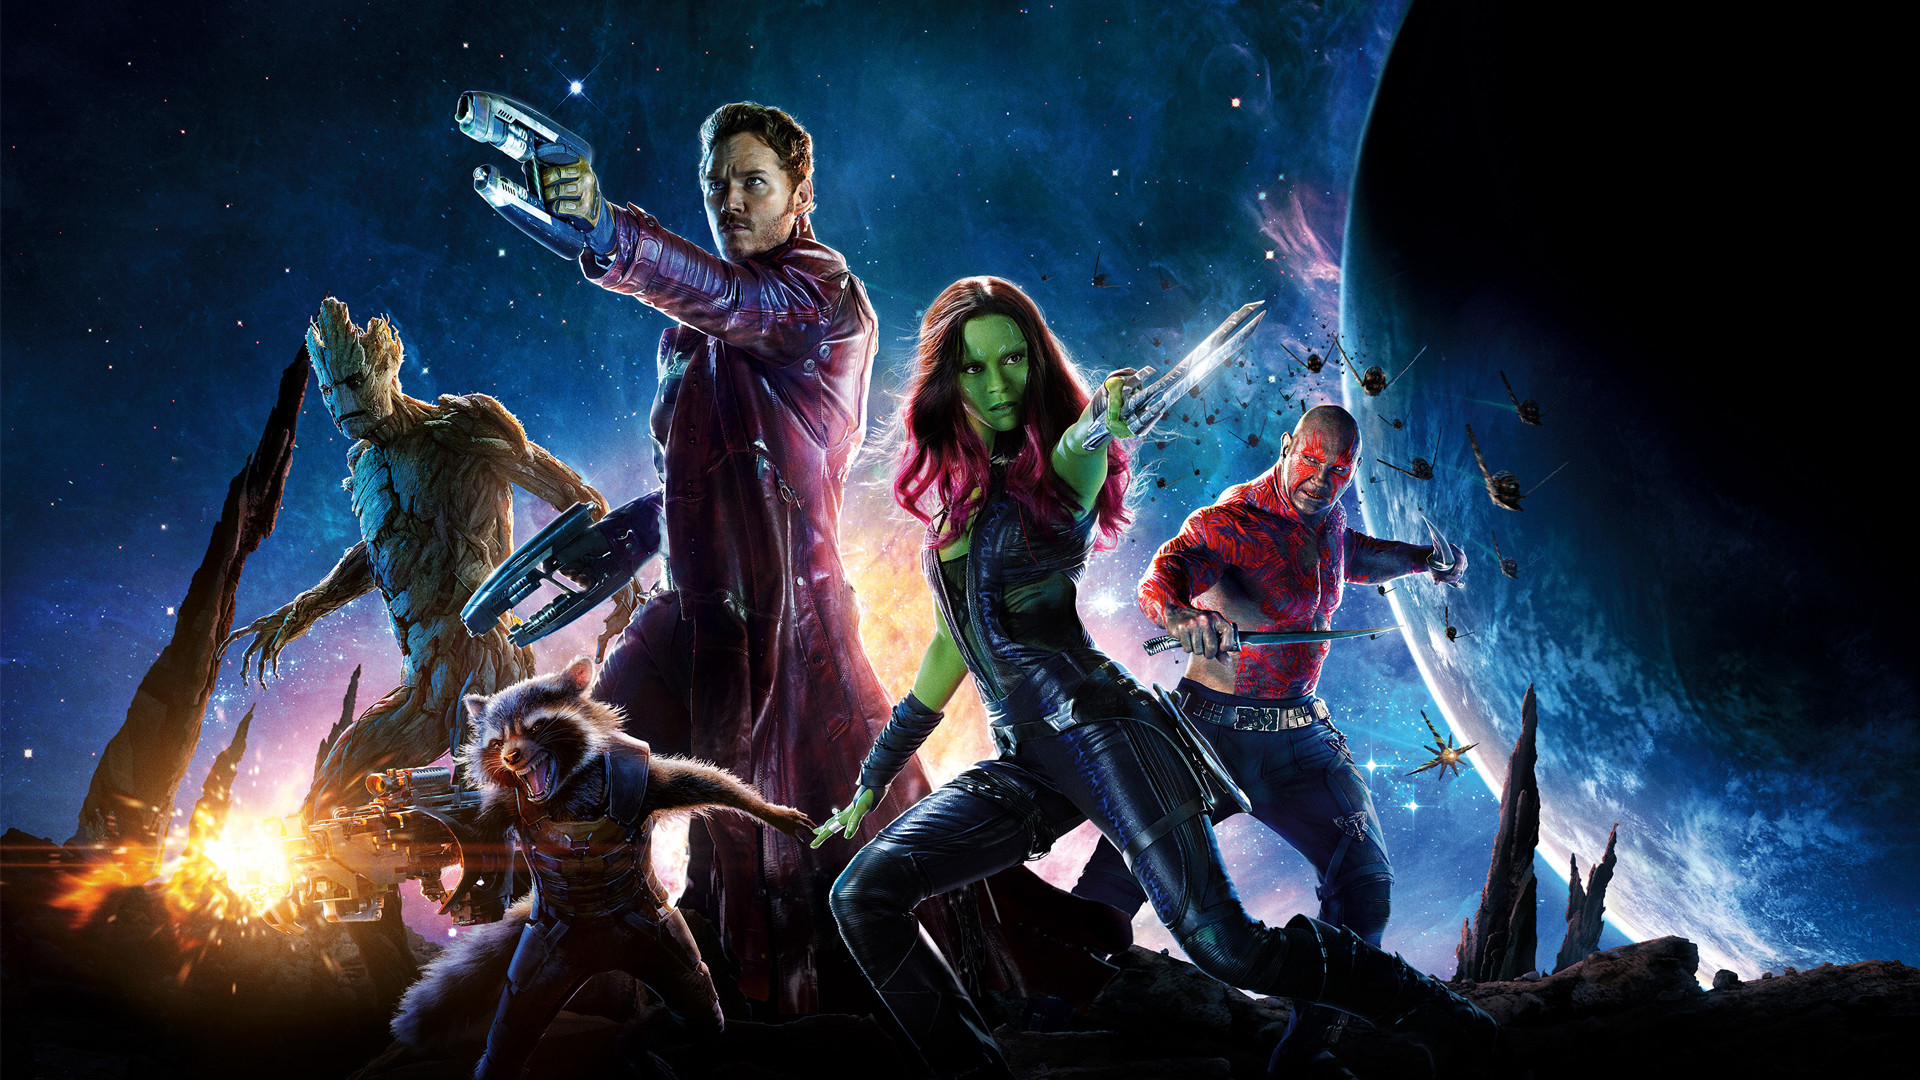 guardians-of-the-galaxy-wallpaper-1080p